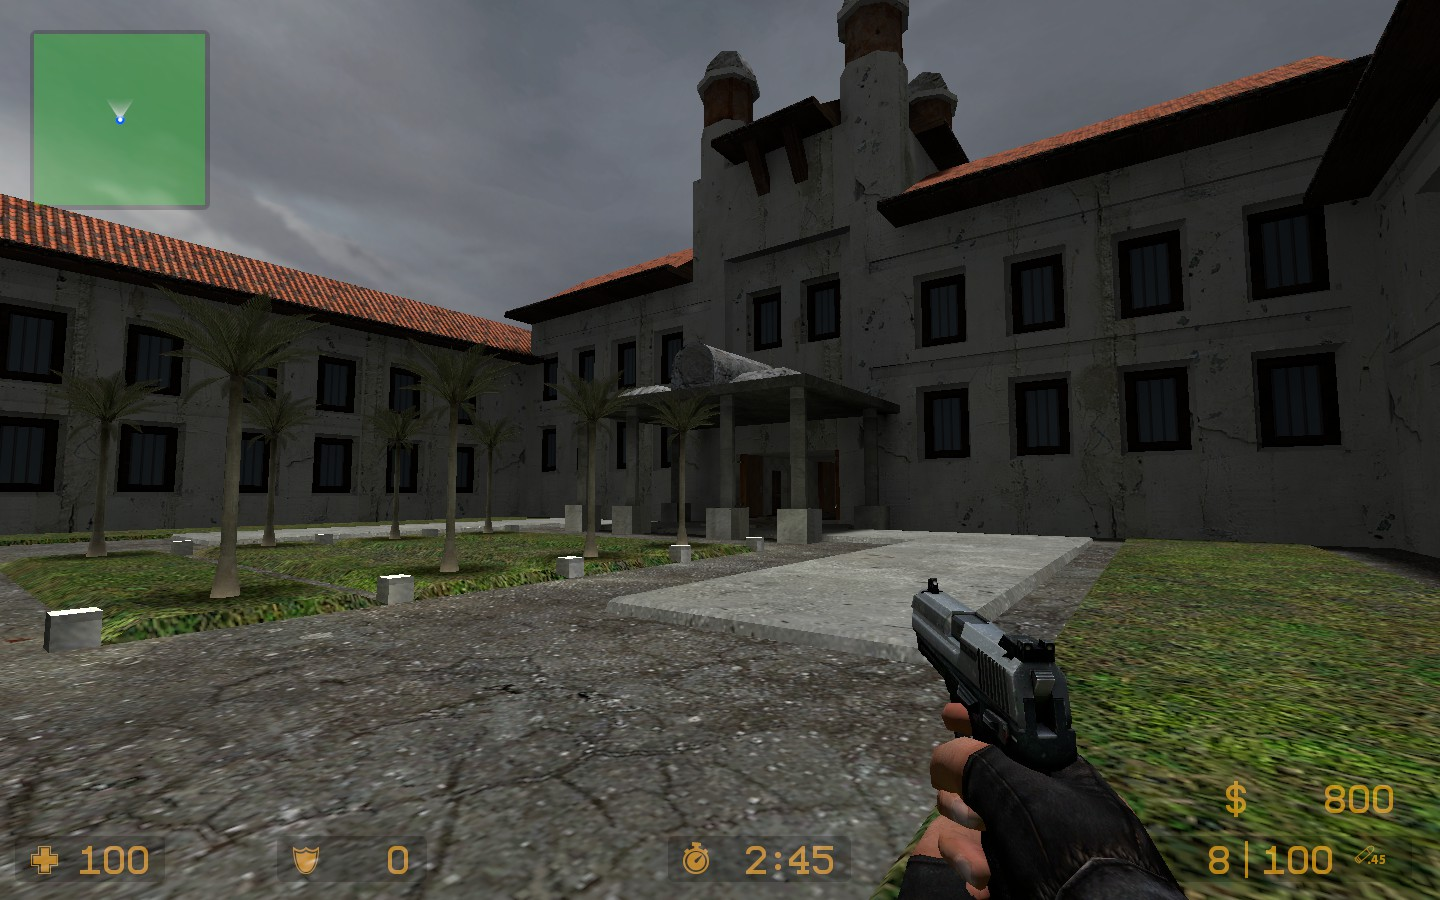 Aim_Hotel Arena Map For CS Source